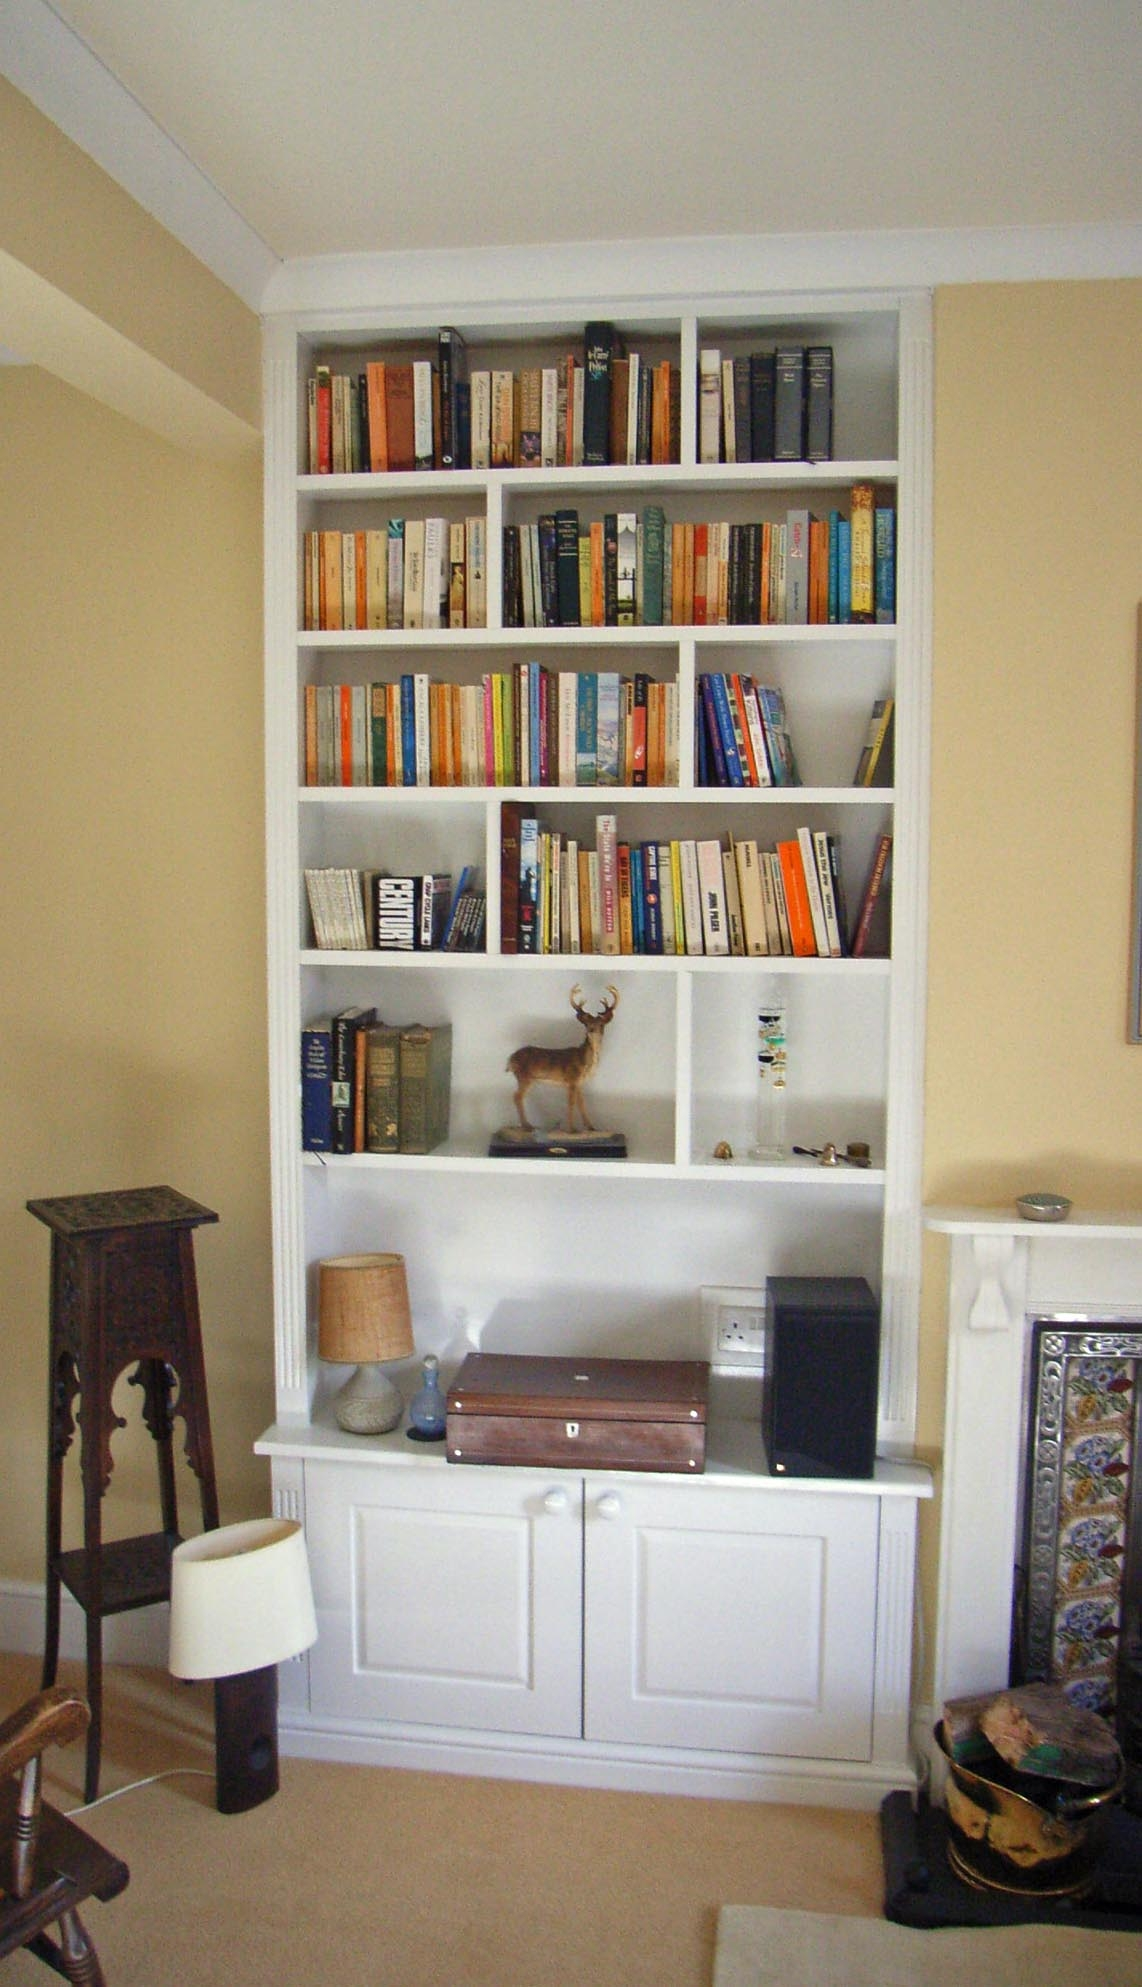 Tv Cabinet Bookshelf Google Search Shelves Pinterest Tv Regarding Fitted Shelving Systems (View 15 of 15)